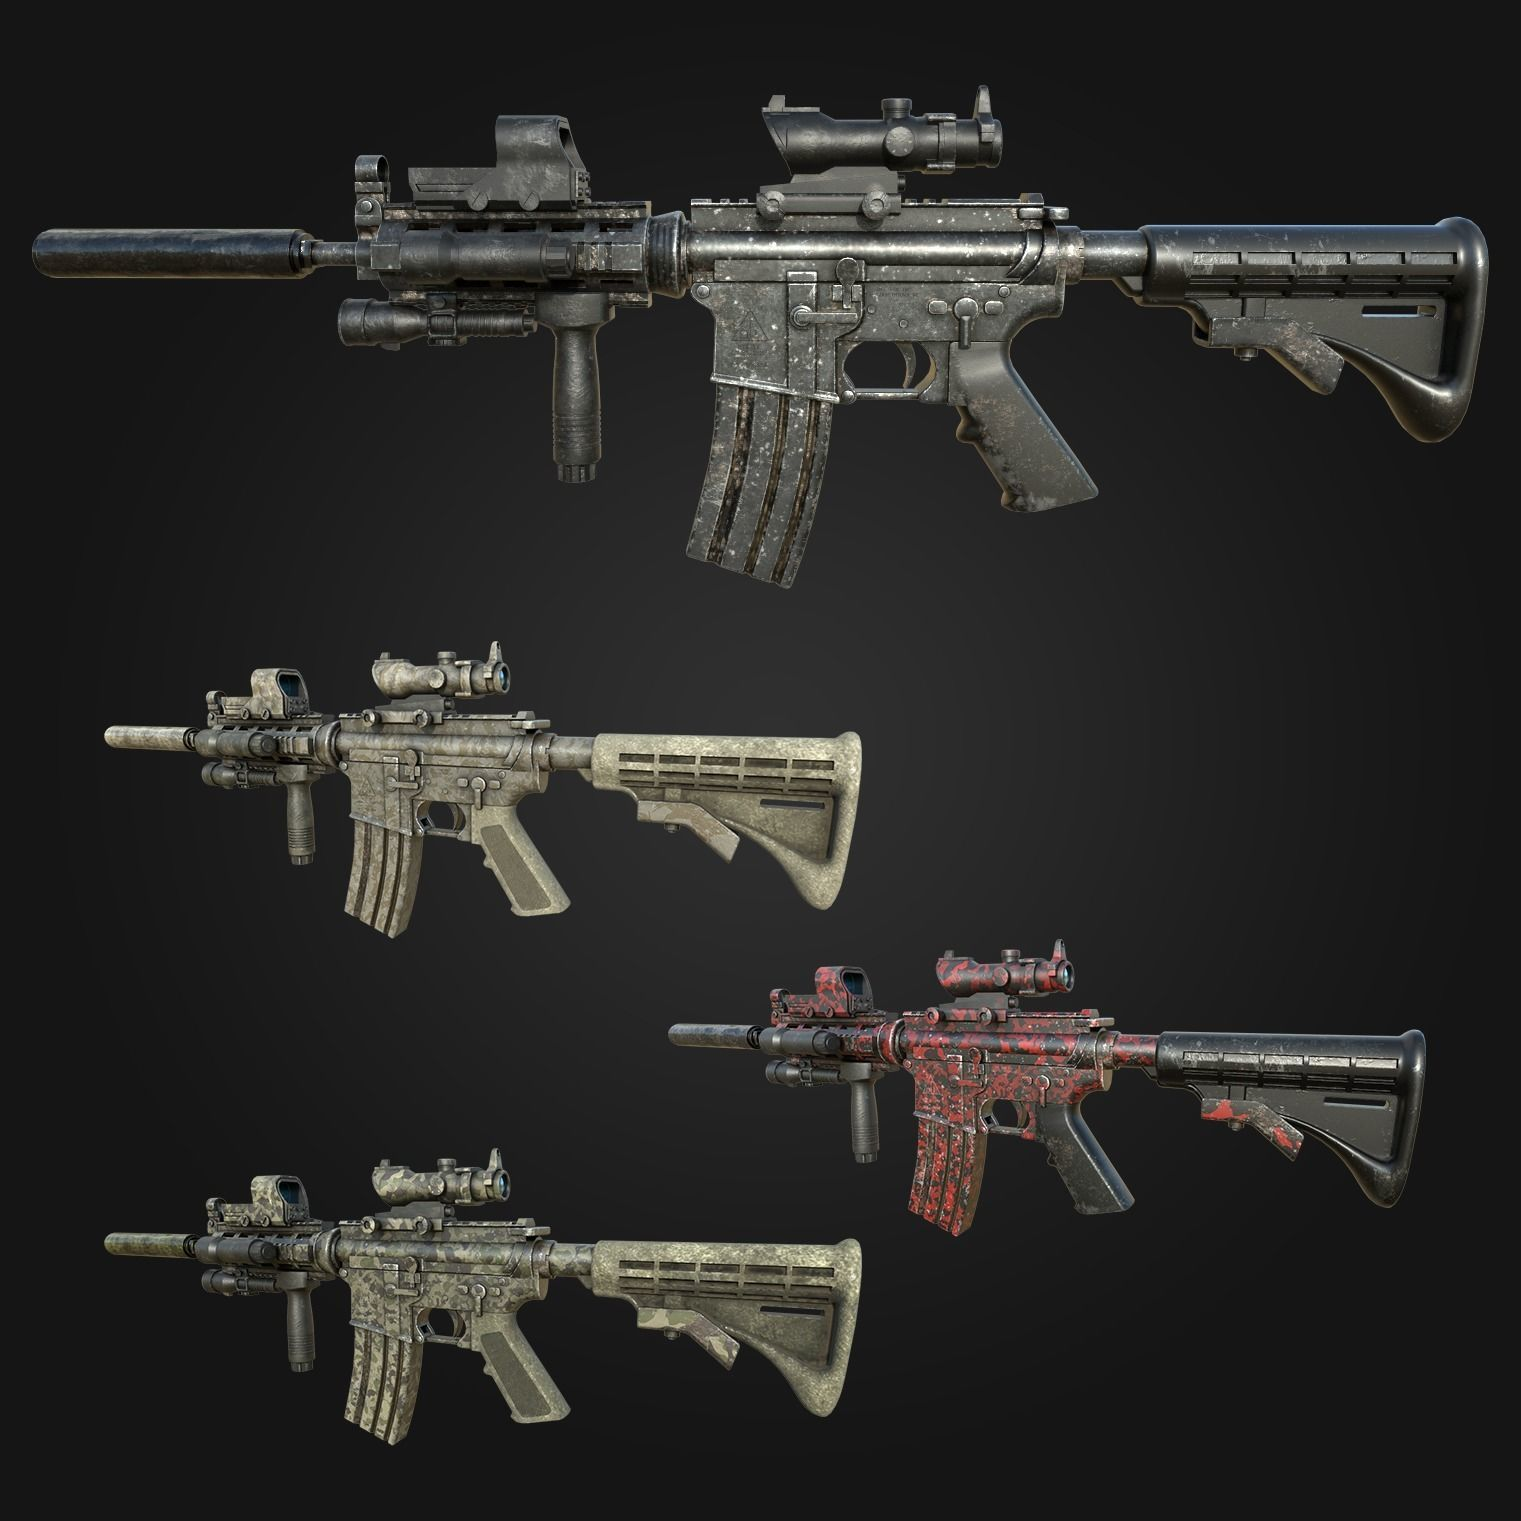 M4 Carbine Assault Rifle with Tactical Accessories and Skins